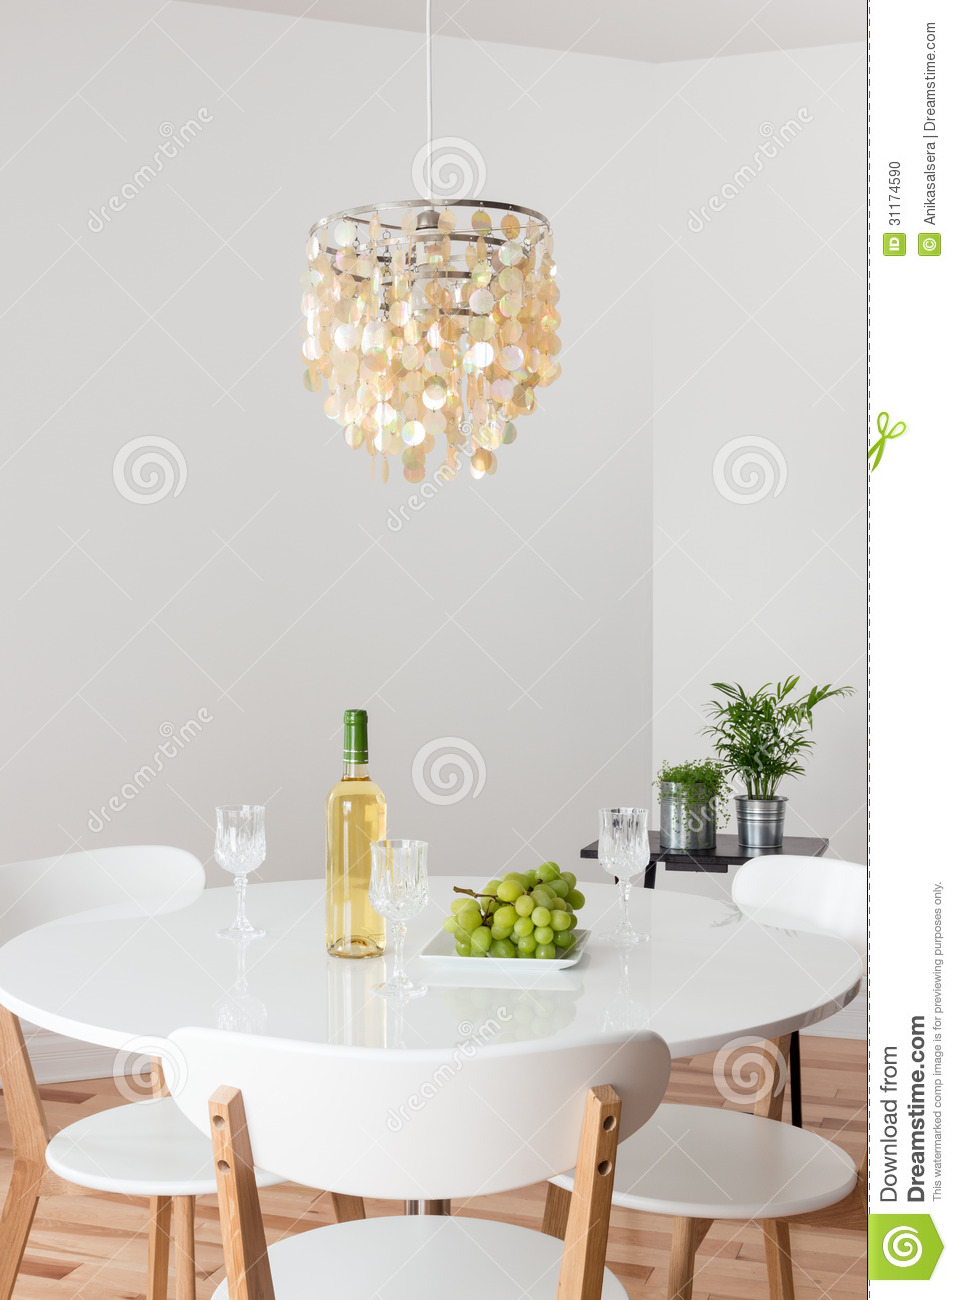 glass round kitchen table where to buy used cabinets room with decorative chandelier and white ...